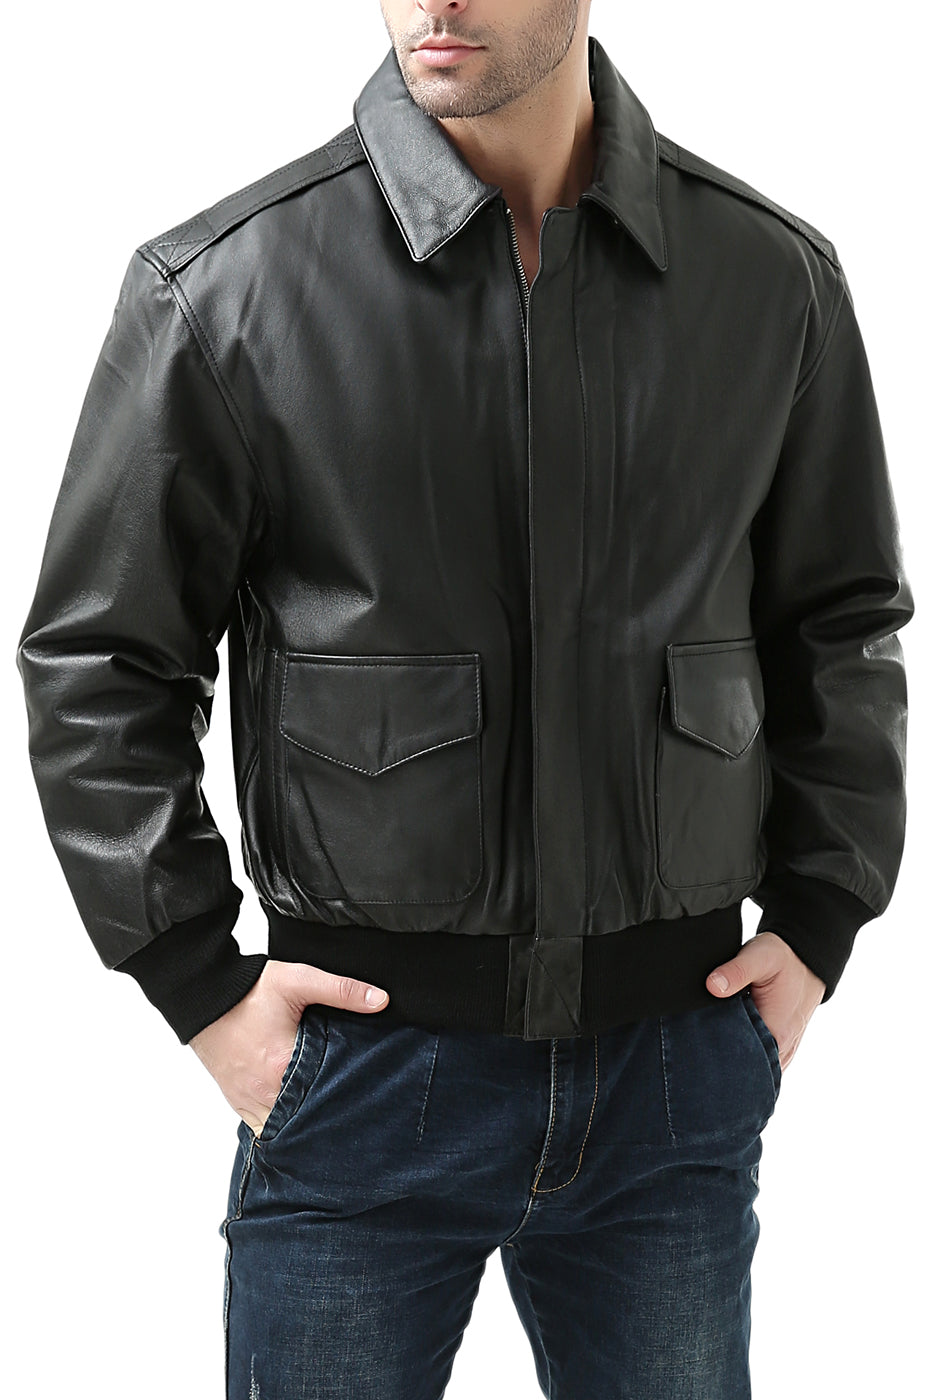 Aviator Air Force Brown Jackets for Men with Real Fur Collar Mens A-2 Flight Bomber Leather Jacket Black